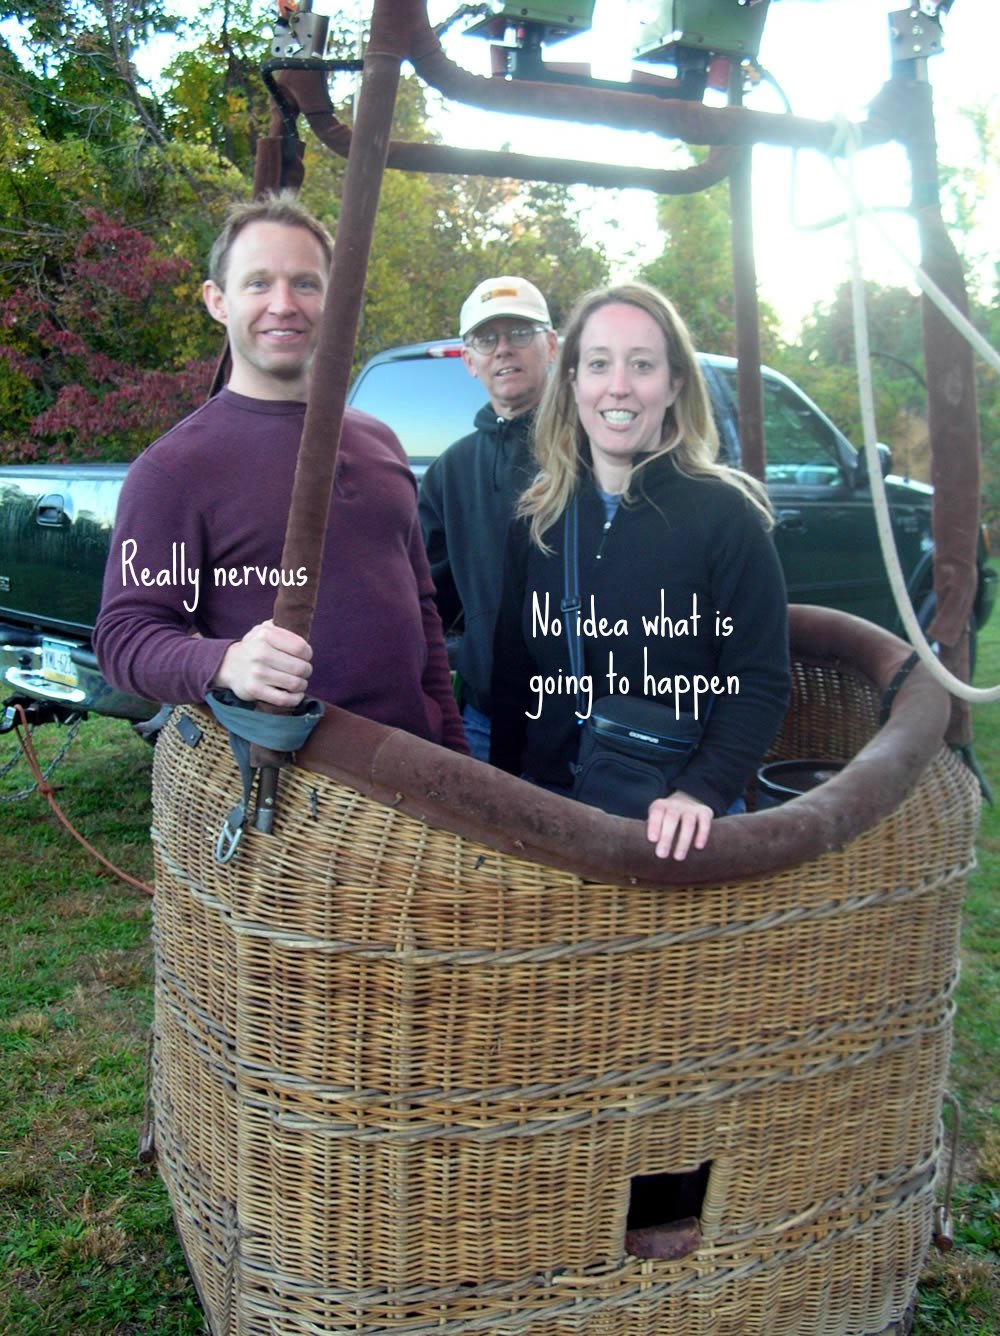 Our engagement story - hot air balloon proposal #MemoryLane #ad